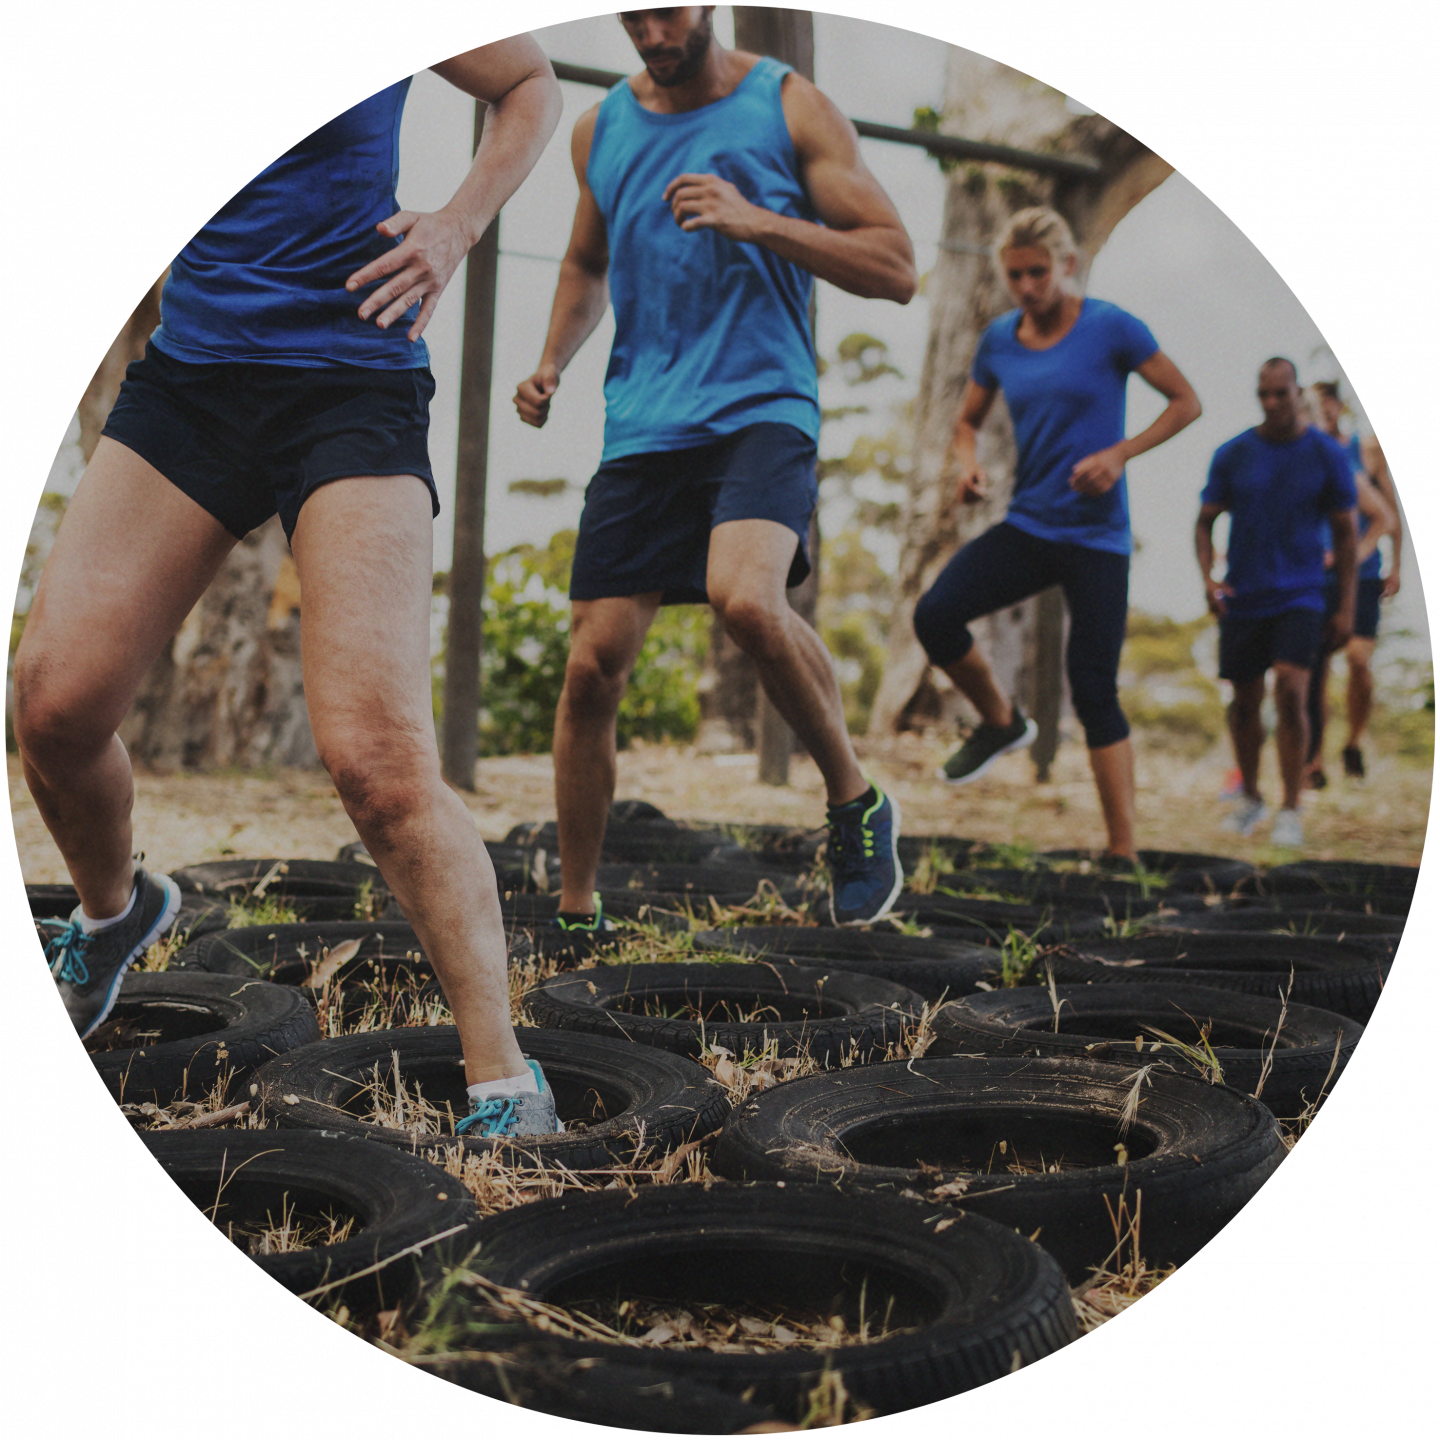 Sporty people running through an obstacle parcours with old car tires. team building, obstacle race, team event, business, fitness, bonding, Outdoor_Fitness Circuit_Obstacle race, adidas, GamePlan A